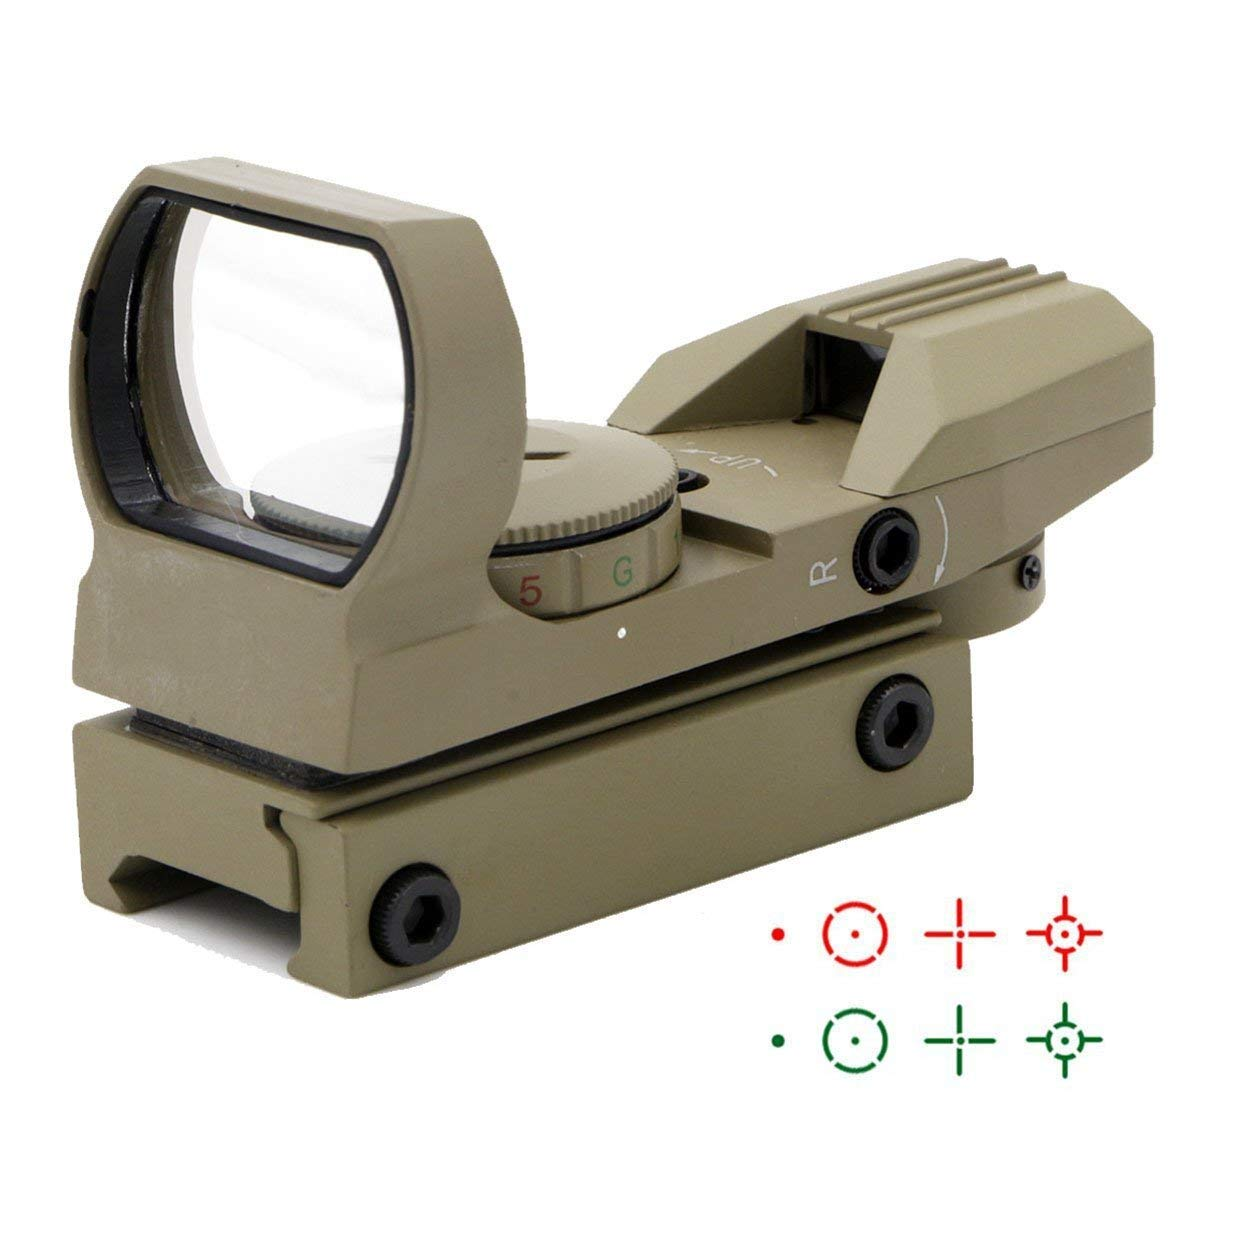 Ohuhu OH-RG-SC-4R Red Green Dot Gun Sight Scope Reflex Sight with 4 Reticles (Sand) by Ohuhu